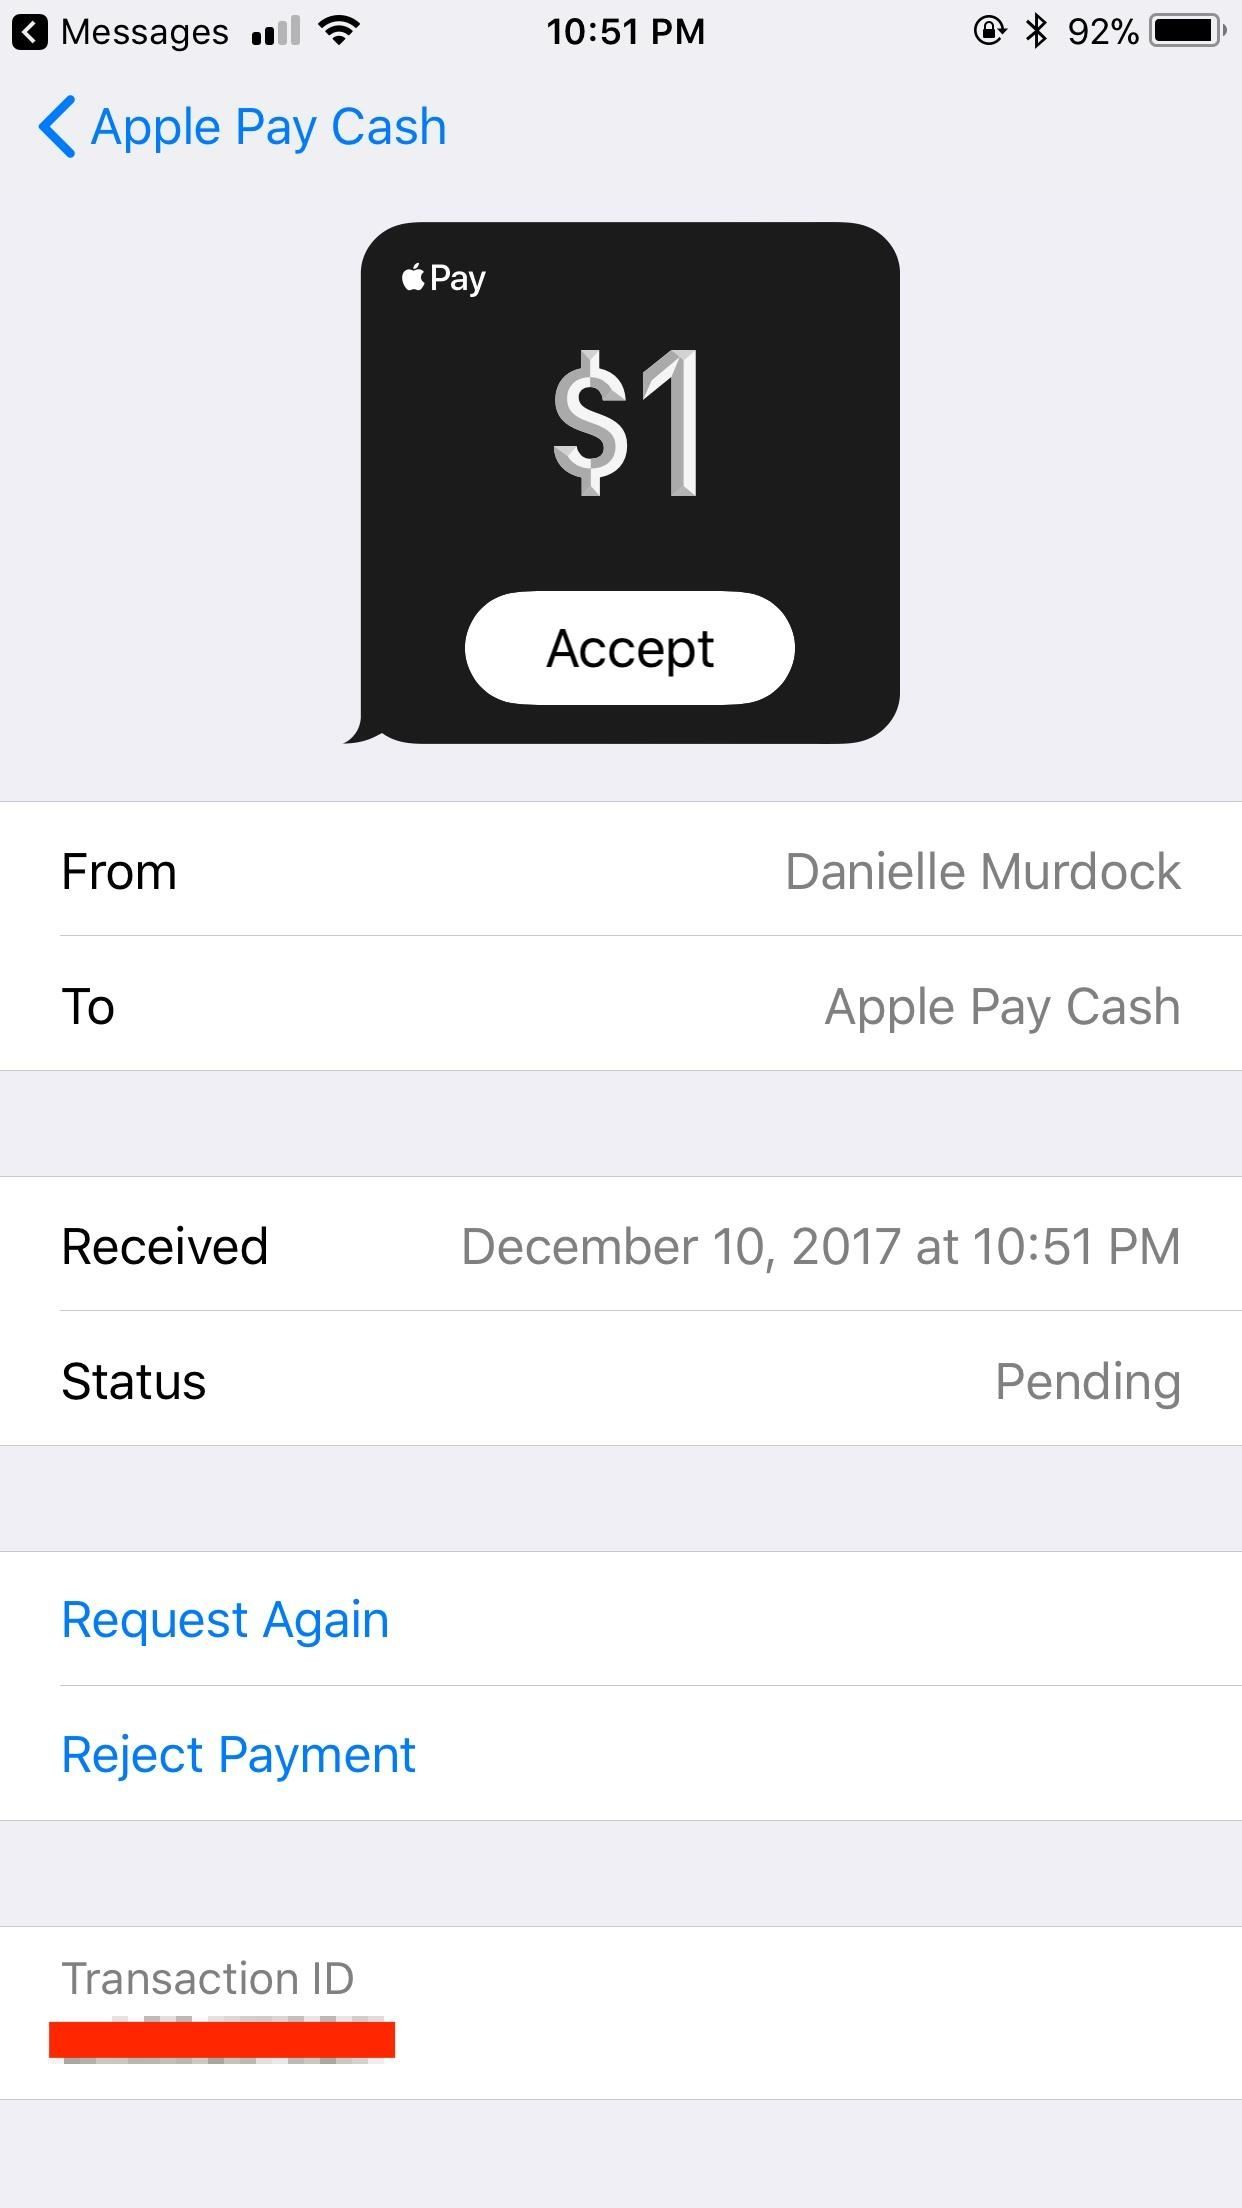 Apple Pay Cash 101: How to Accept or Reject Money from Friends & Family